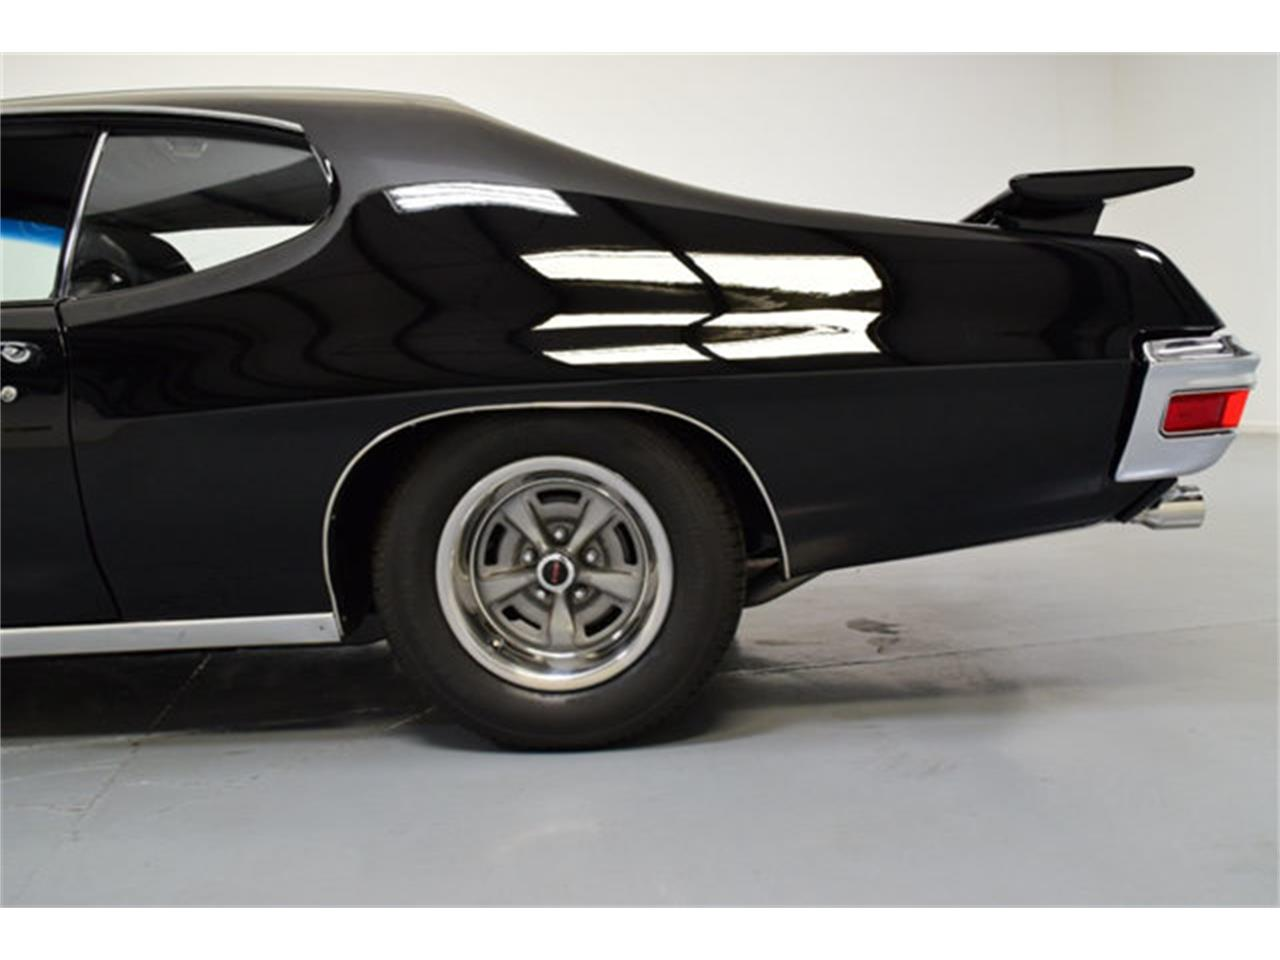 Large Picture of 1971 Pontiac GTO located in Mooresville North Carolina - $49,995.00 - LFBK